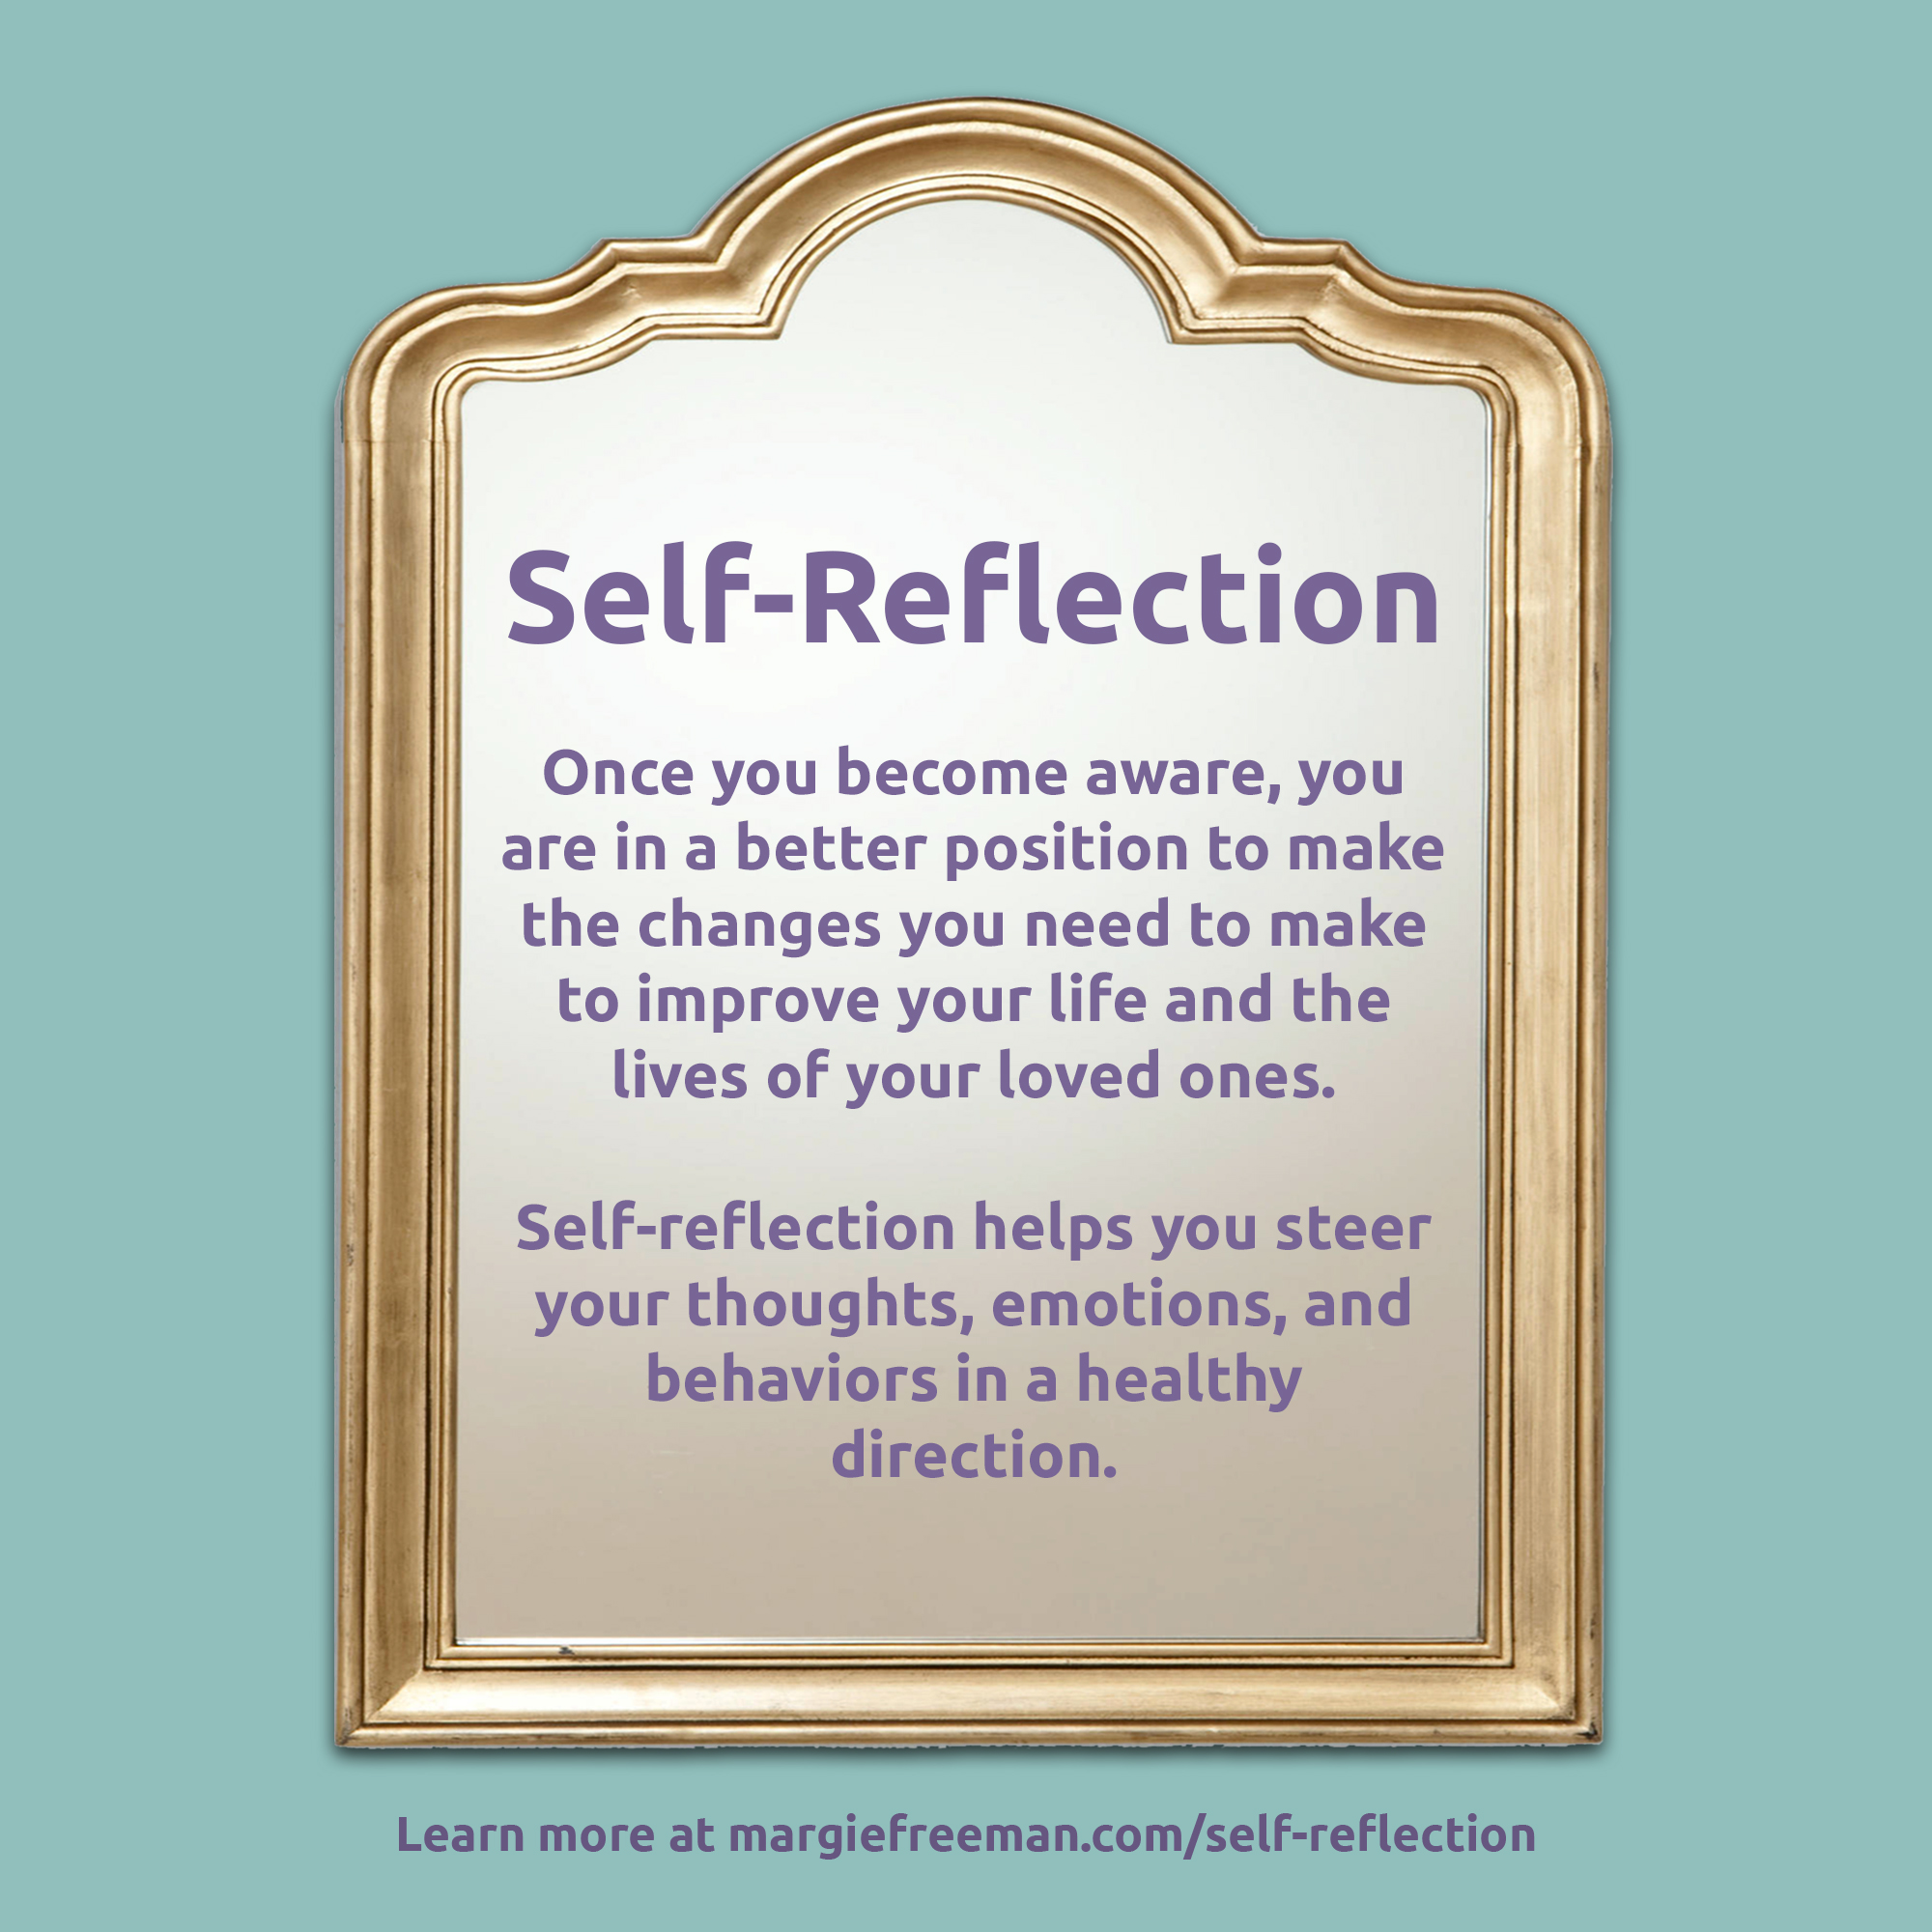 reflective journal1 my reflection on shaping Reflective learning: keeping a reflective learning journal   what do you think reflective learners might consider and reflect upon  i arrived  at my lecture early just to see if matt would choose to sit next to me again  we  would be forming discussion groups today and i was so happy when i ended up.